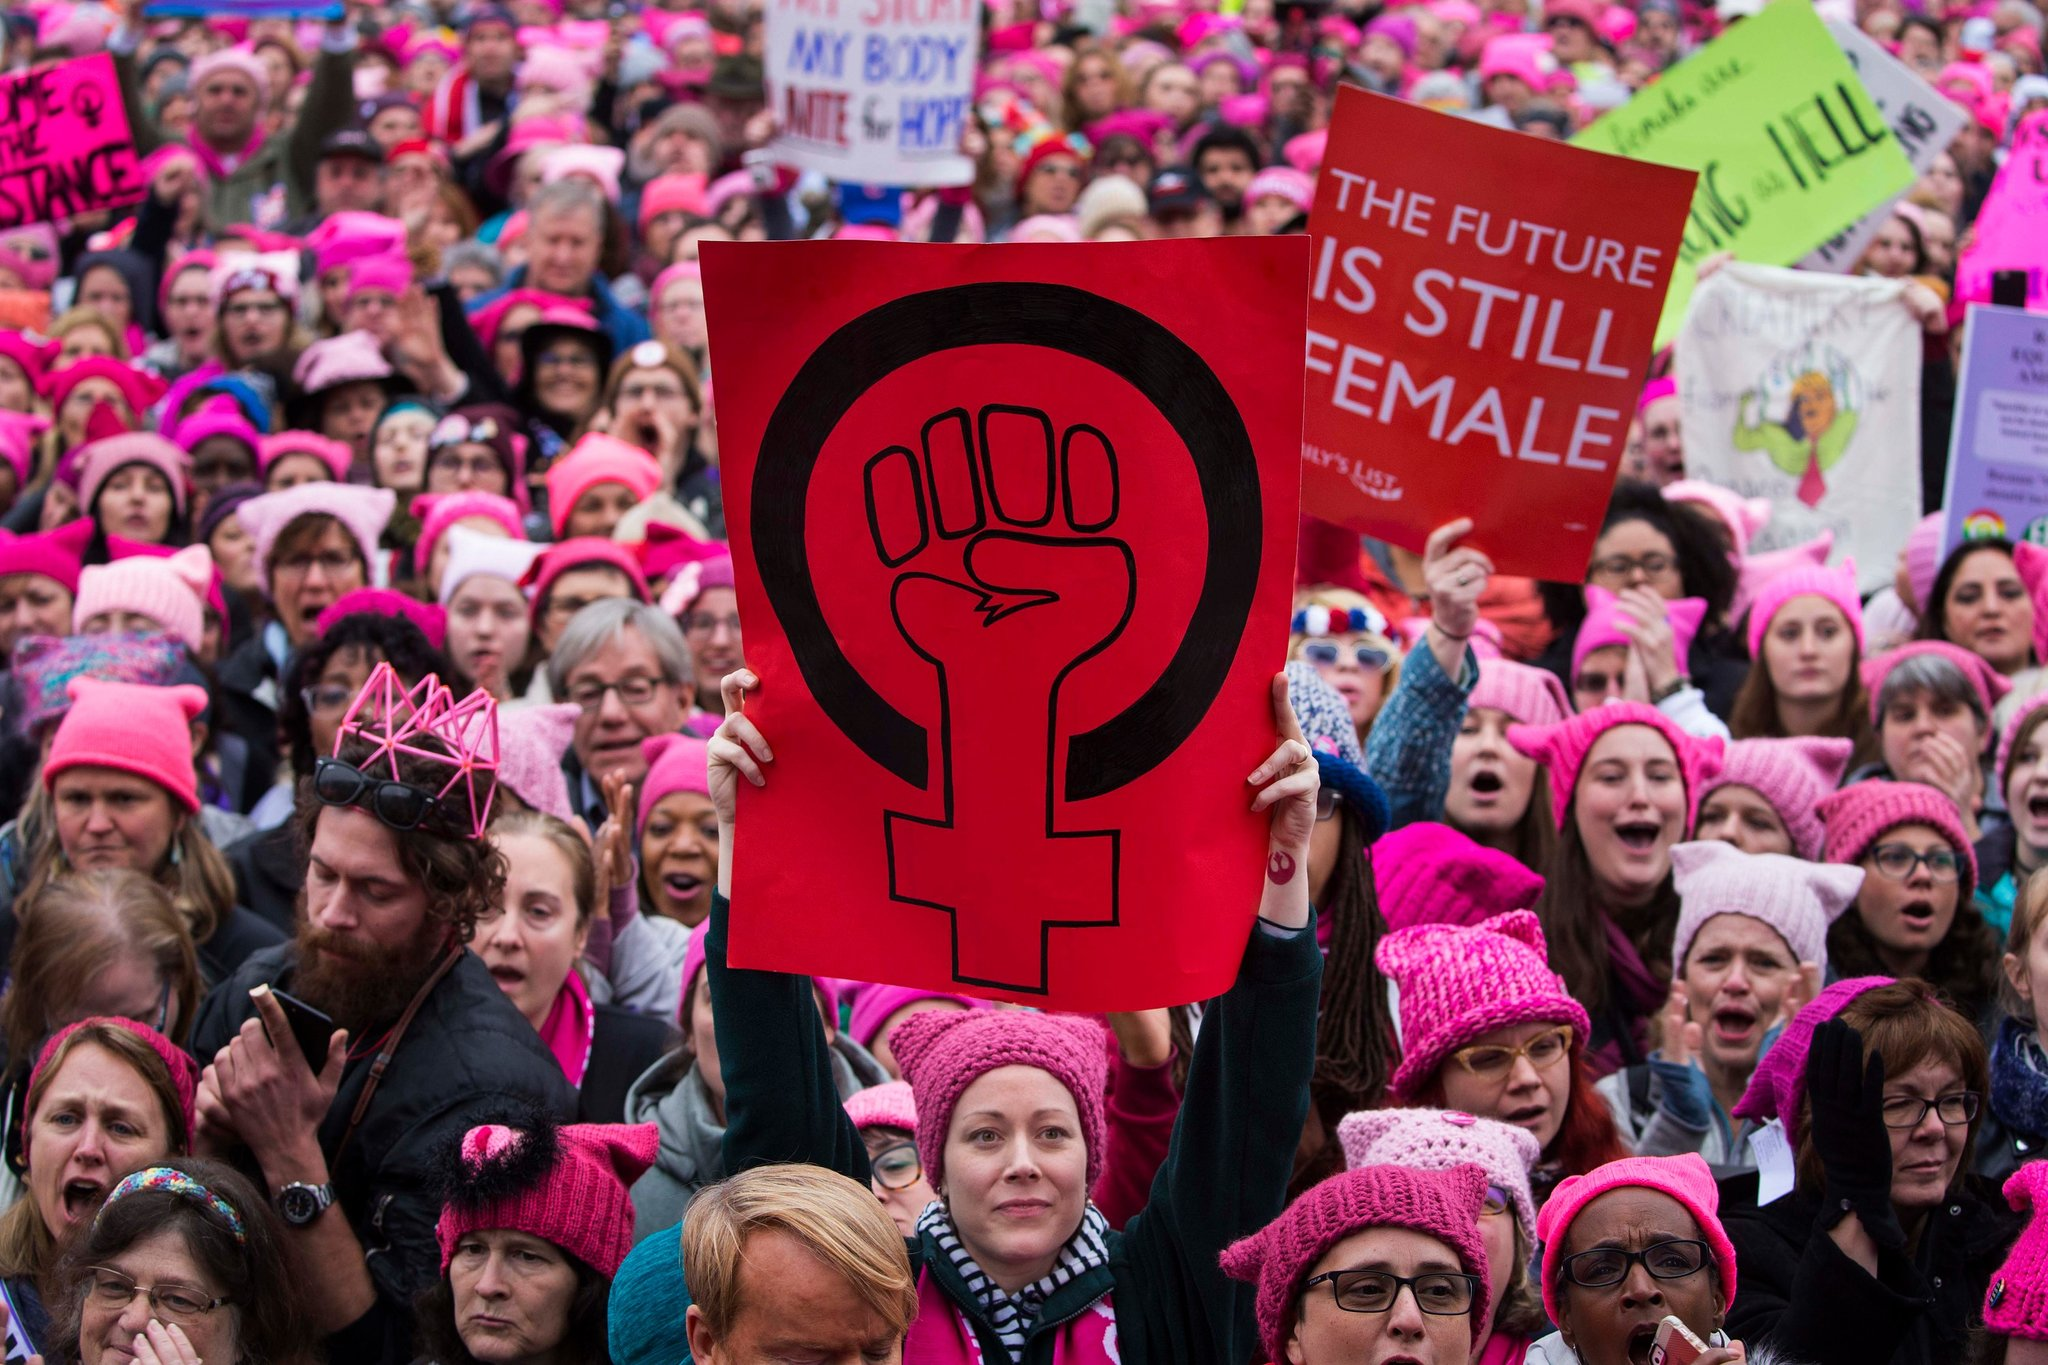 A sea of pink hats on march participants in Washington on Saturday, Jan. 21, 2017, the day after President Donald Trump's inauguration. (Photo: Ruth Fremson/The New York Times)